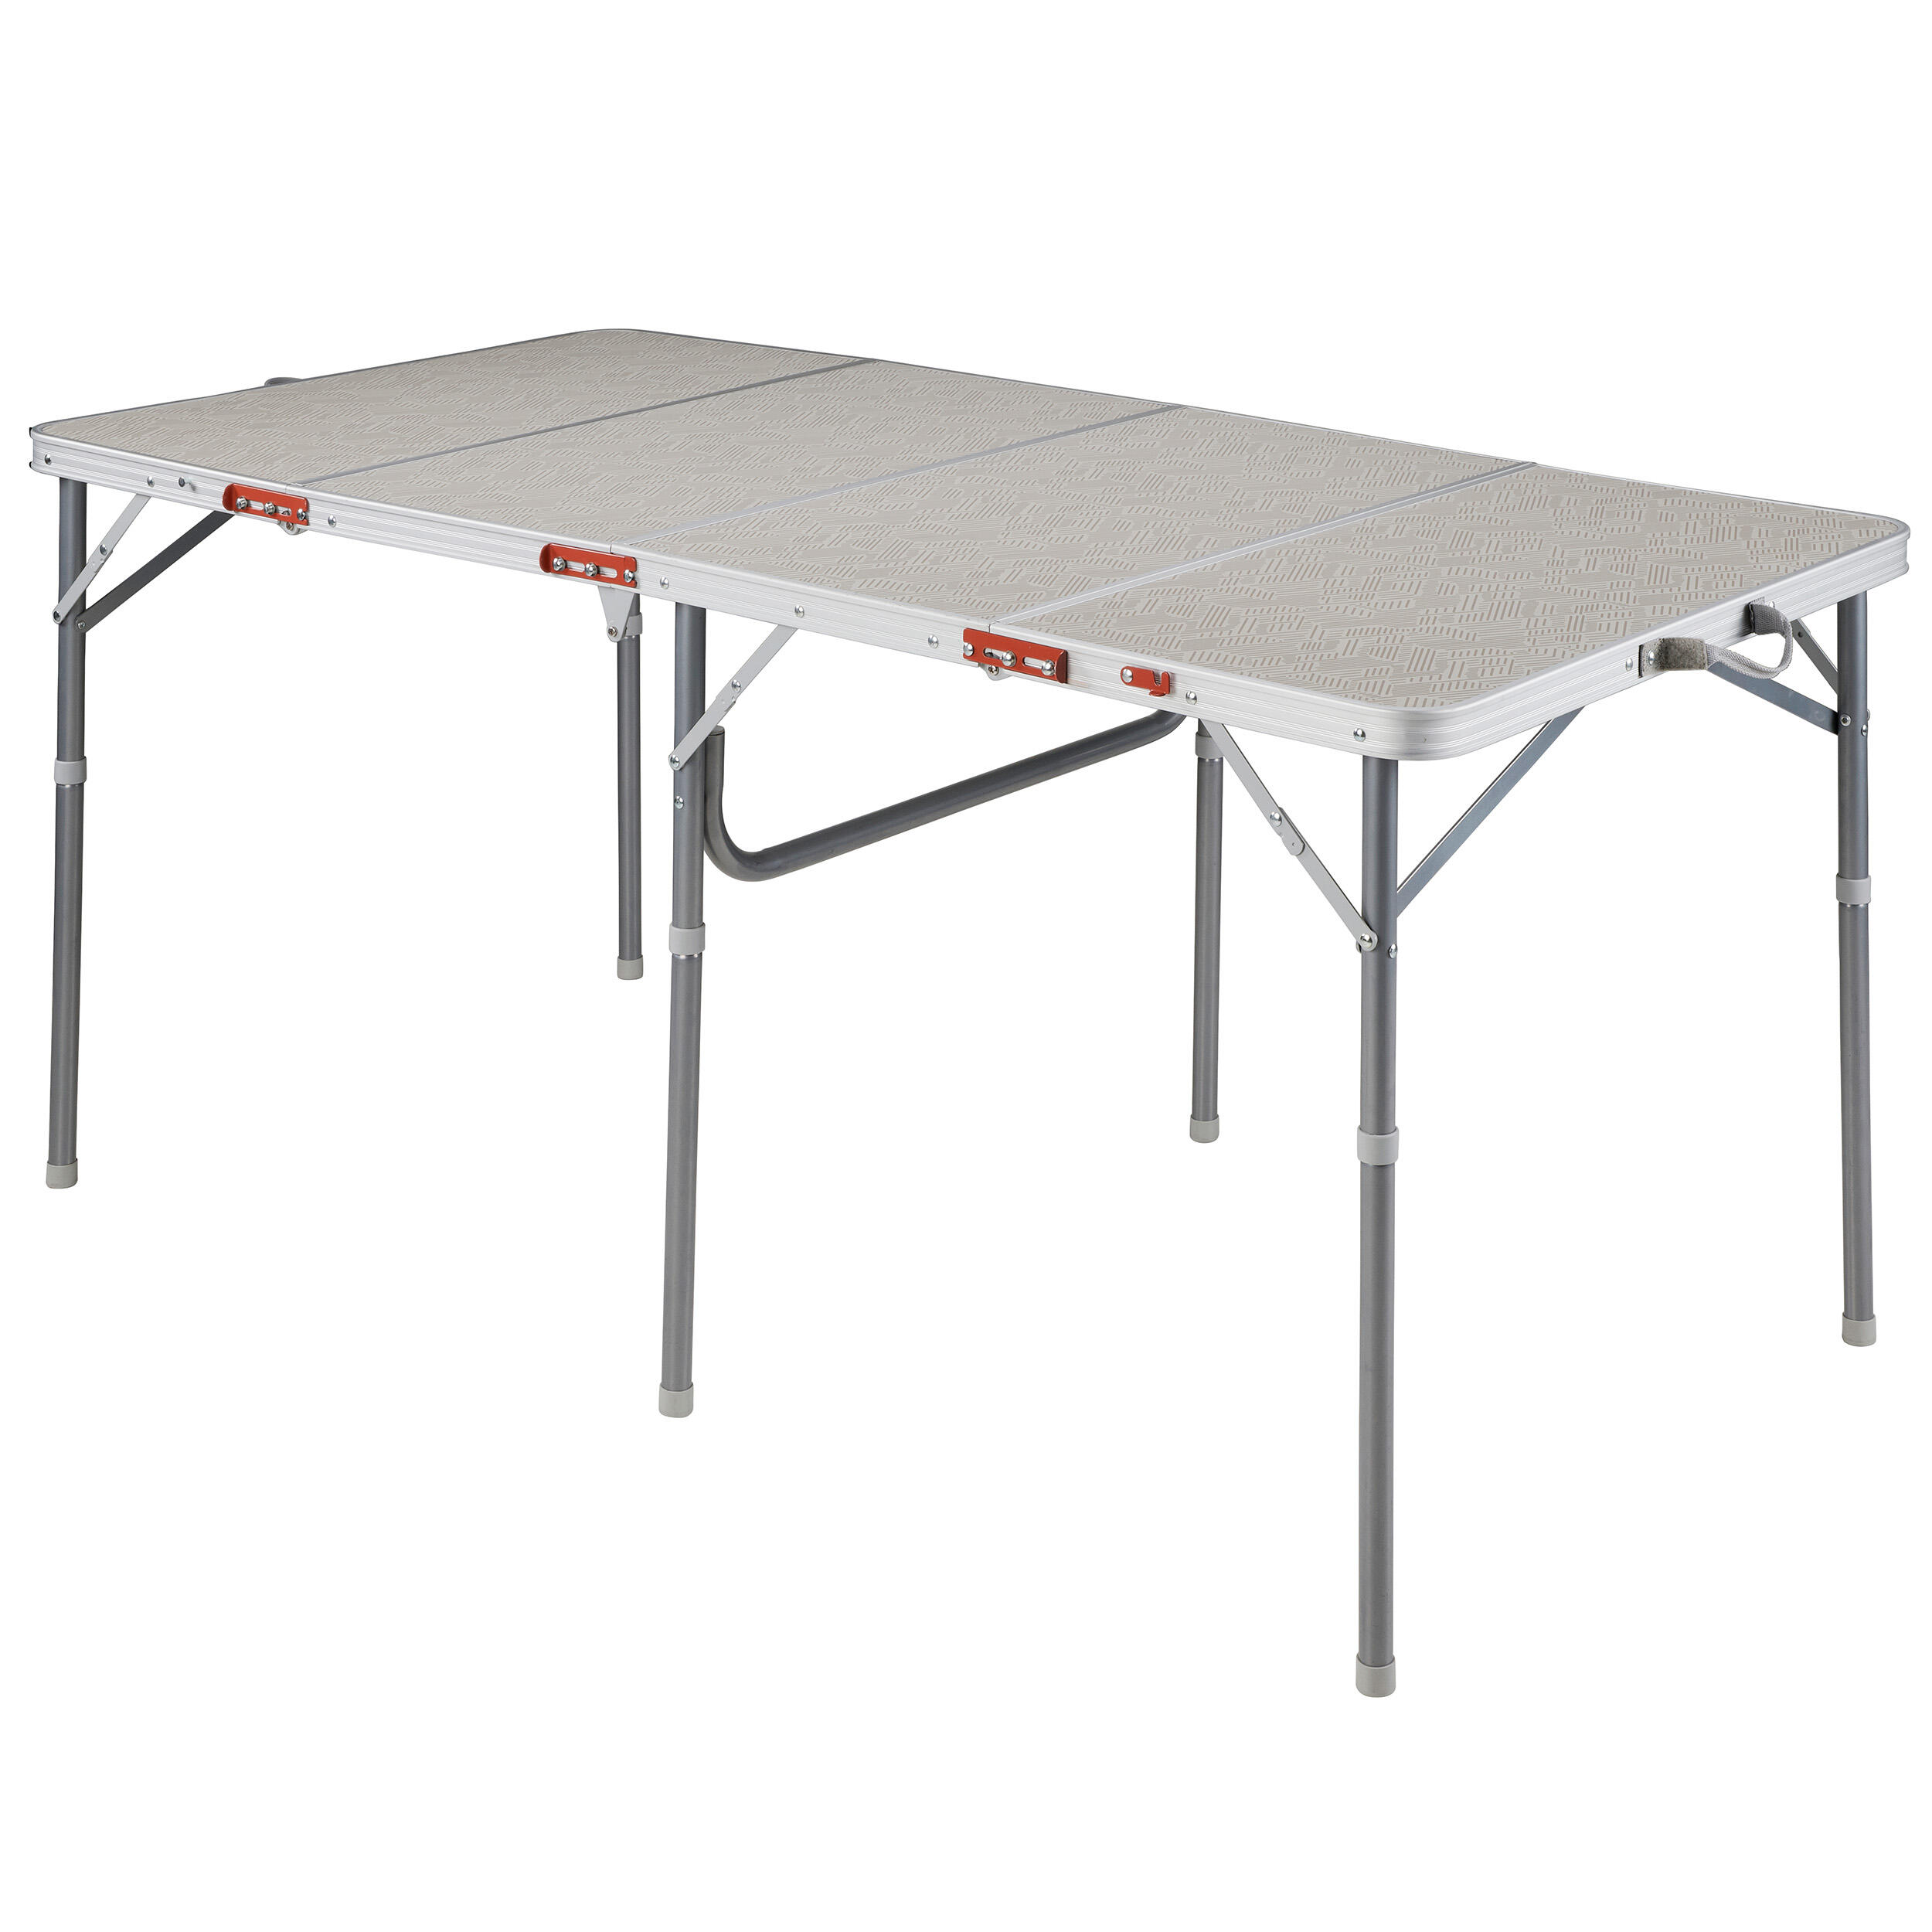 Large Folding Camping Table For 6 To 8 People Decathlon